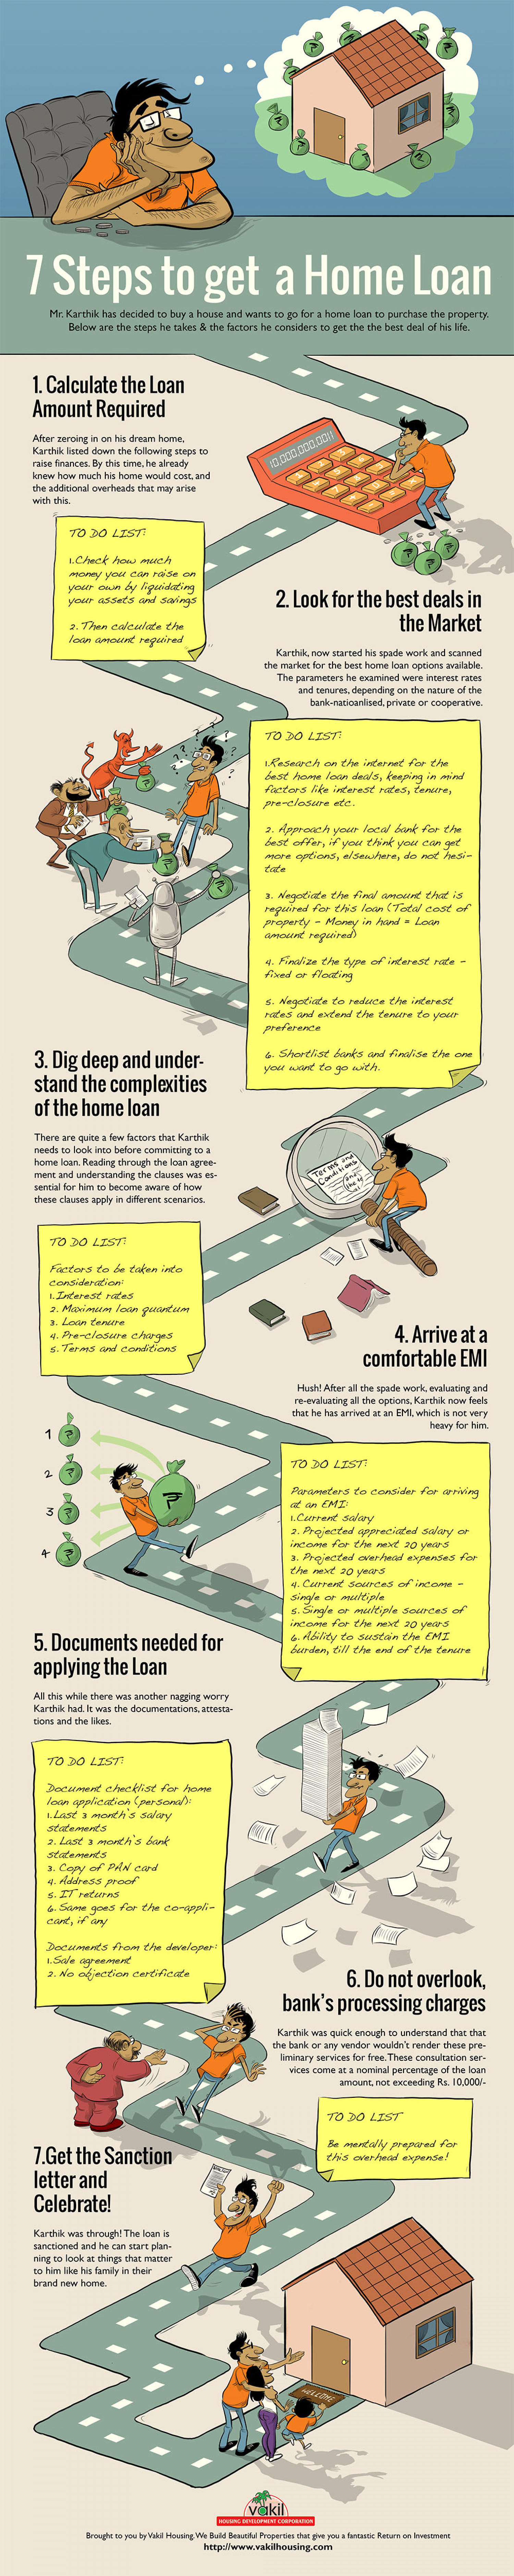 7 Steps to get a Home Loan in India Infographic